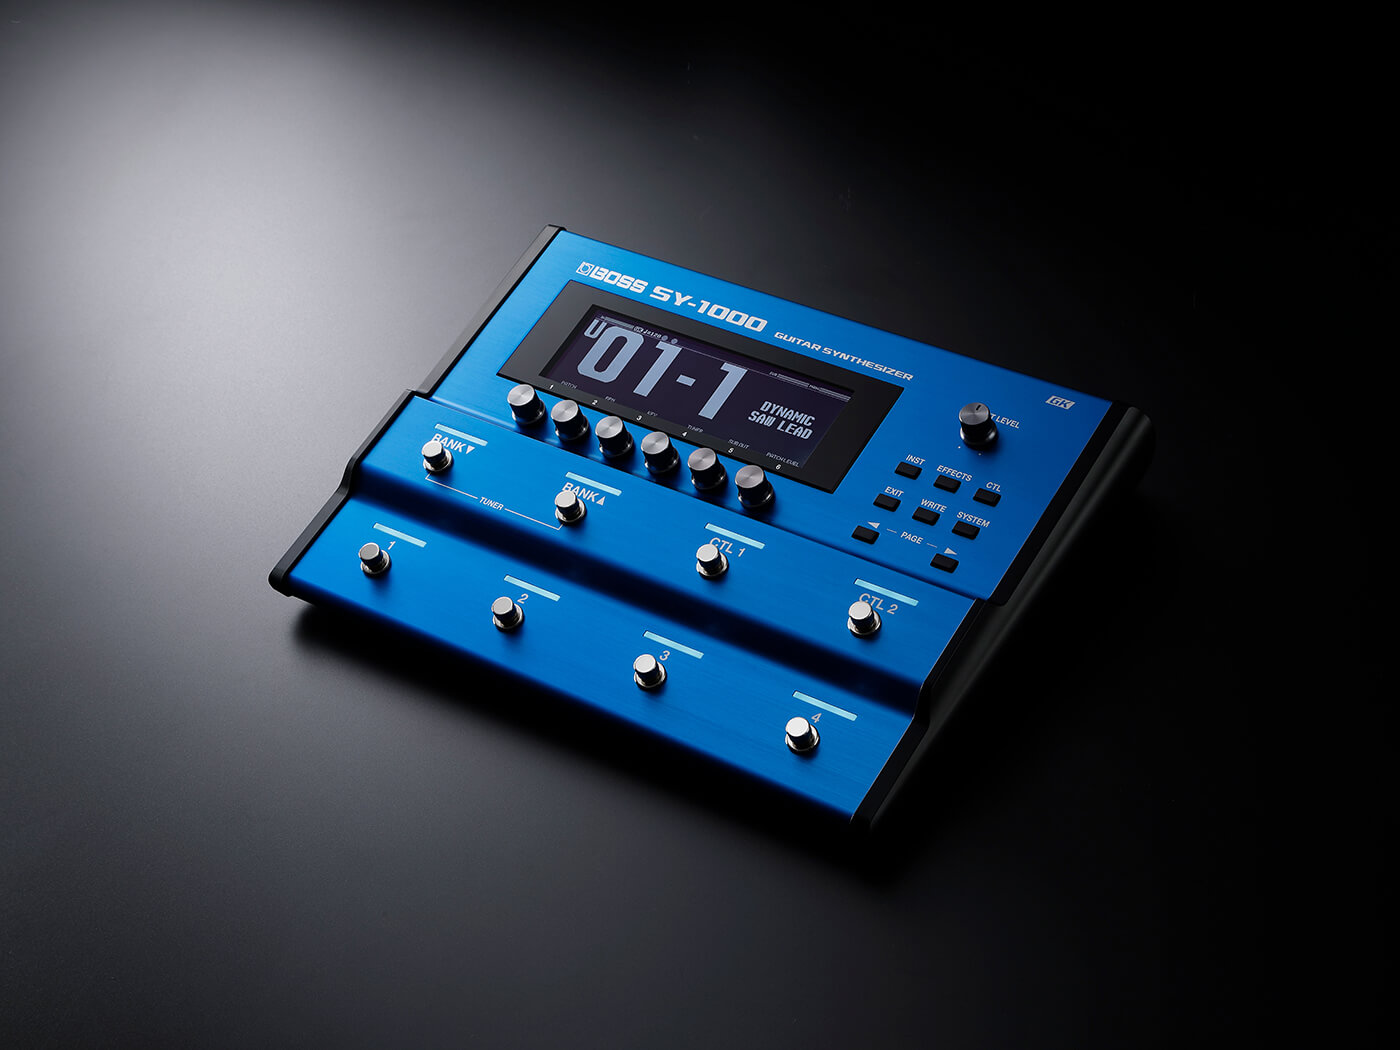 The Boss SY-1000 synth pedal for guitarists and bassists.